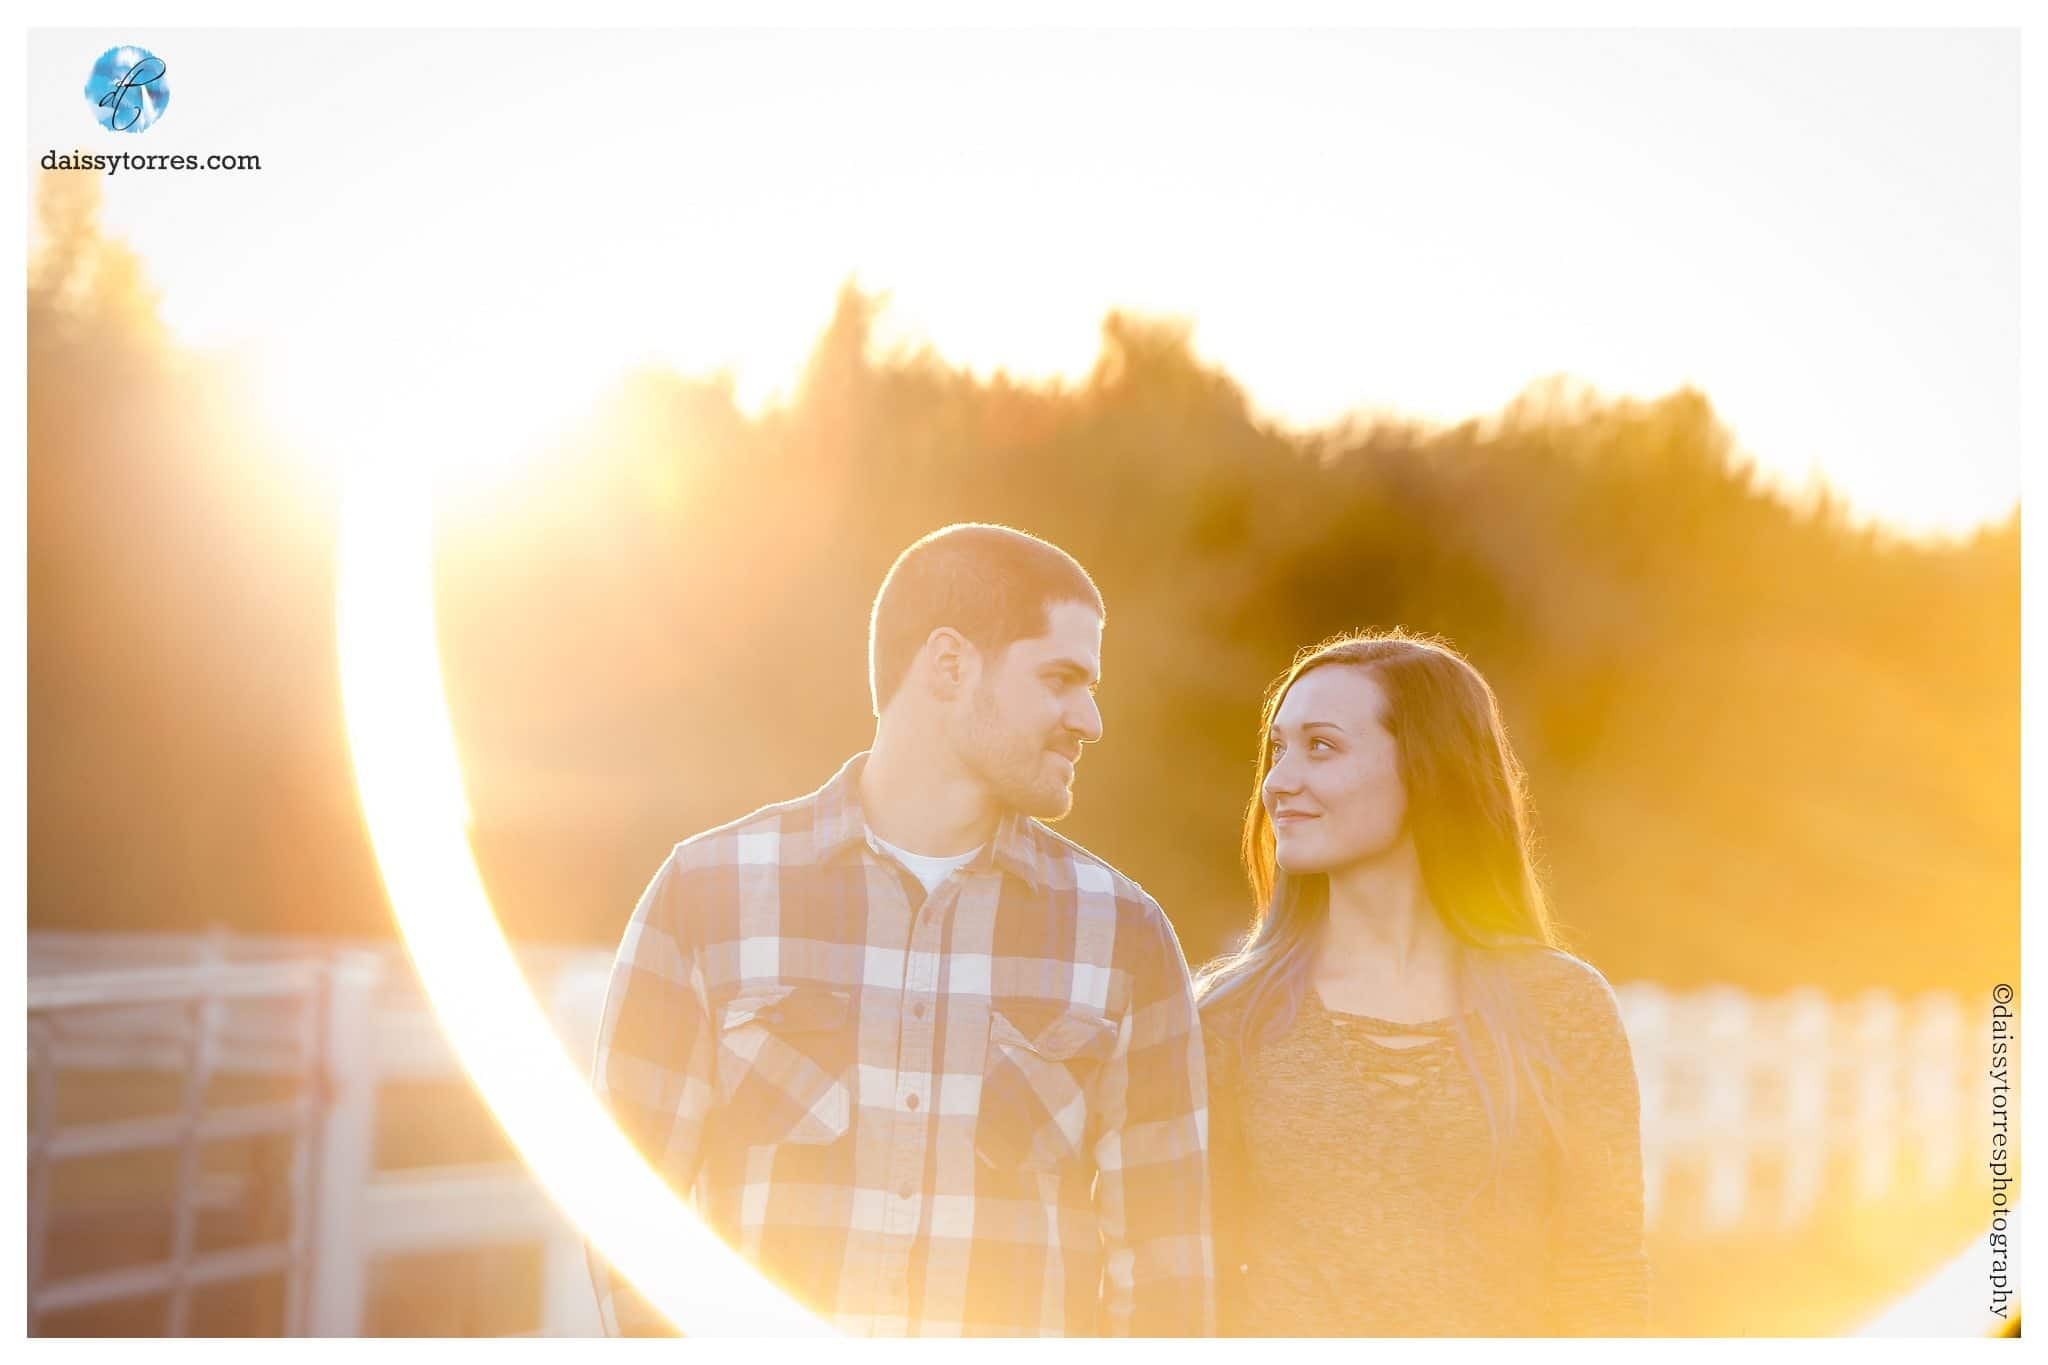 Back Bay Engagement Session - love this sun glare!